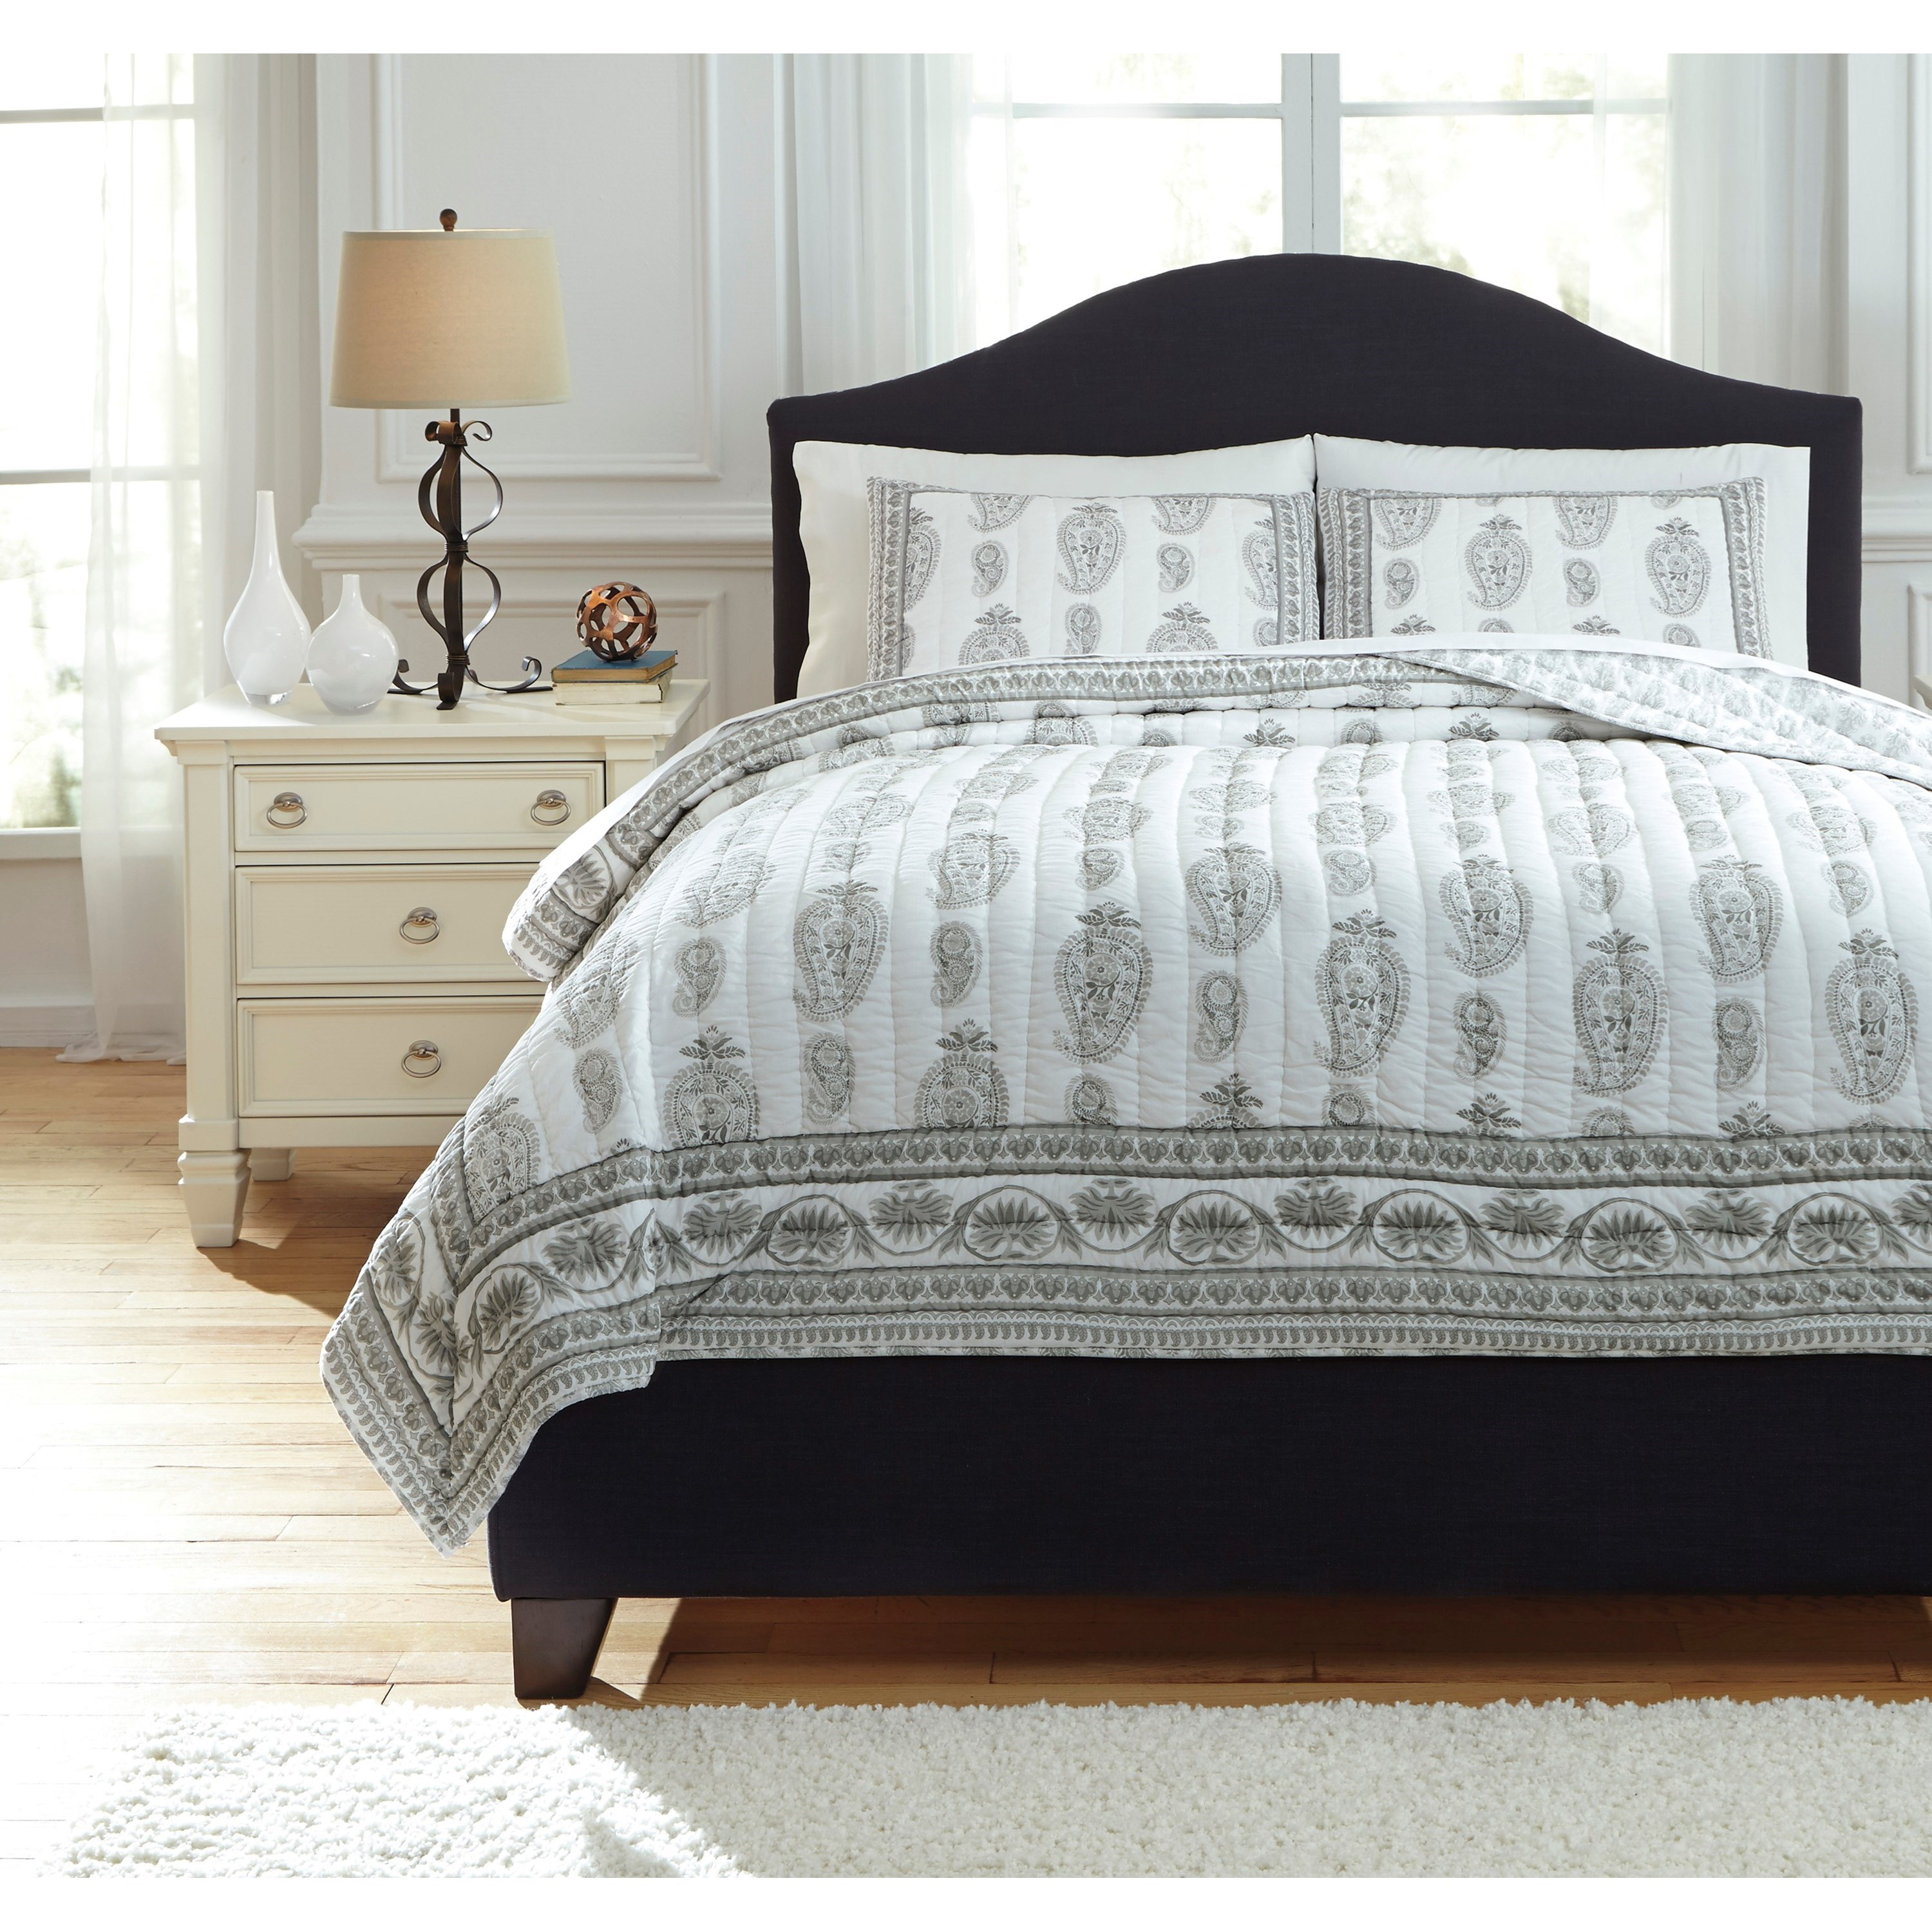 Signature Design by Ashley Bedding Sets Queen Almeda Gray Coverlet Set - Item Number: Q726023Q